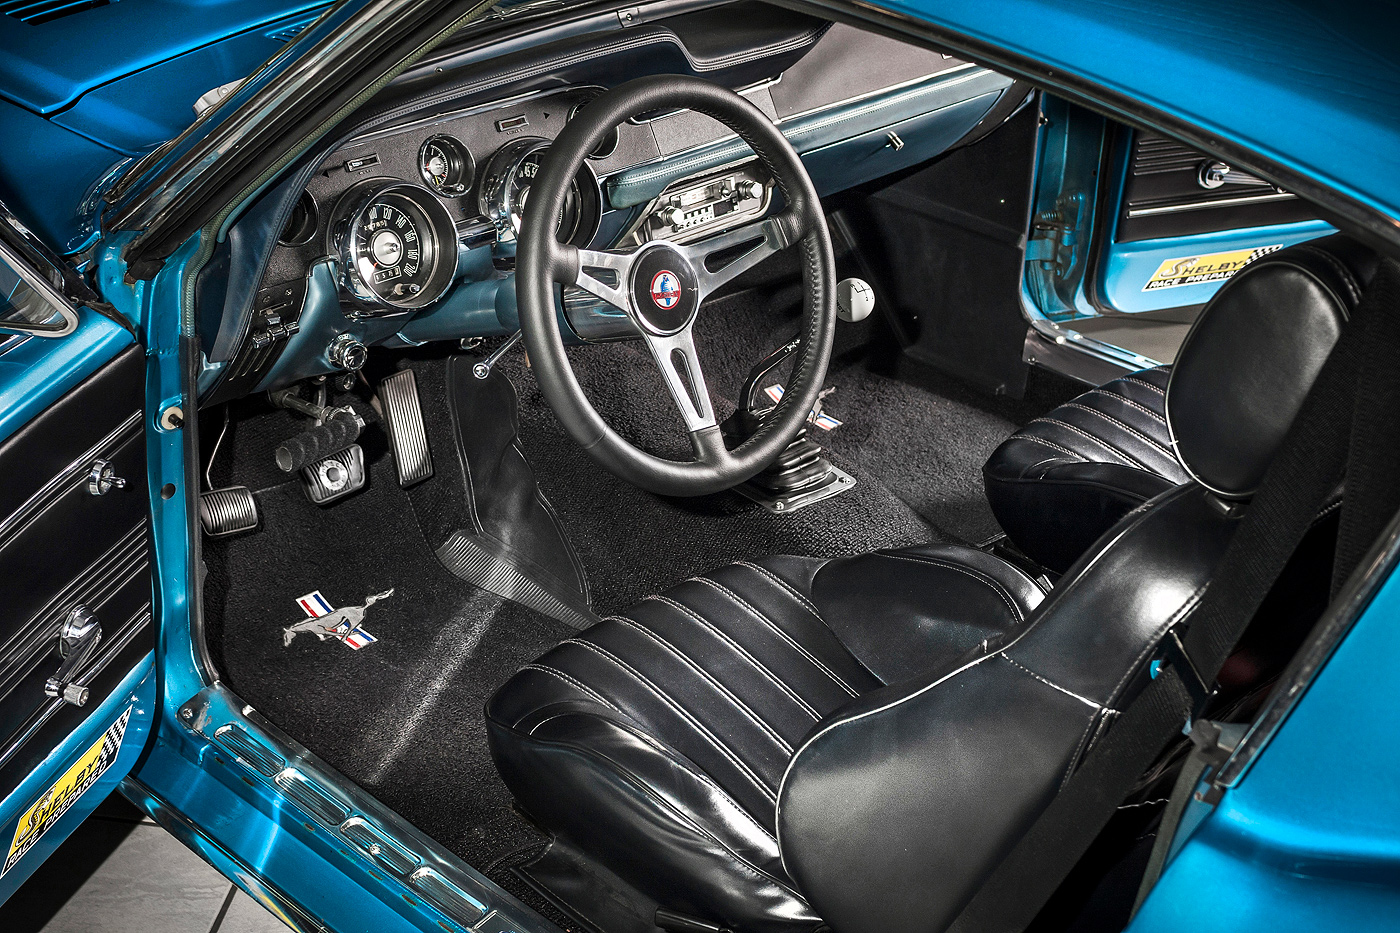 http://gerlingracing.com/wp-content/uploads/2015/01/projects-67-Ford-mustang-fastback-1967_06.jpg